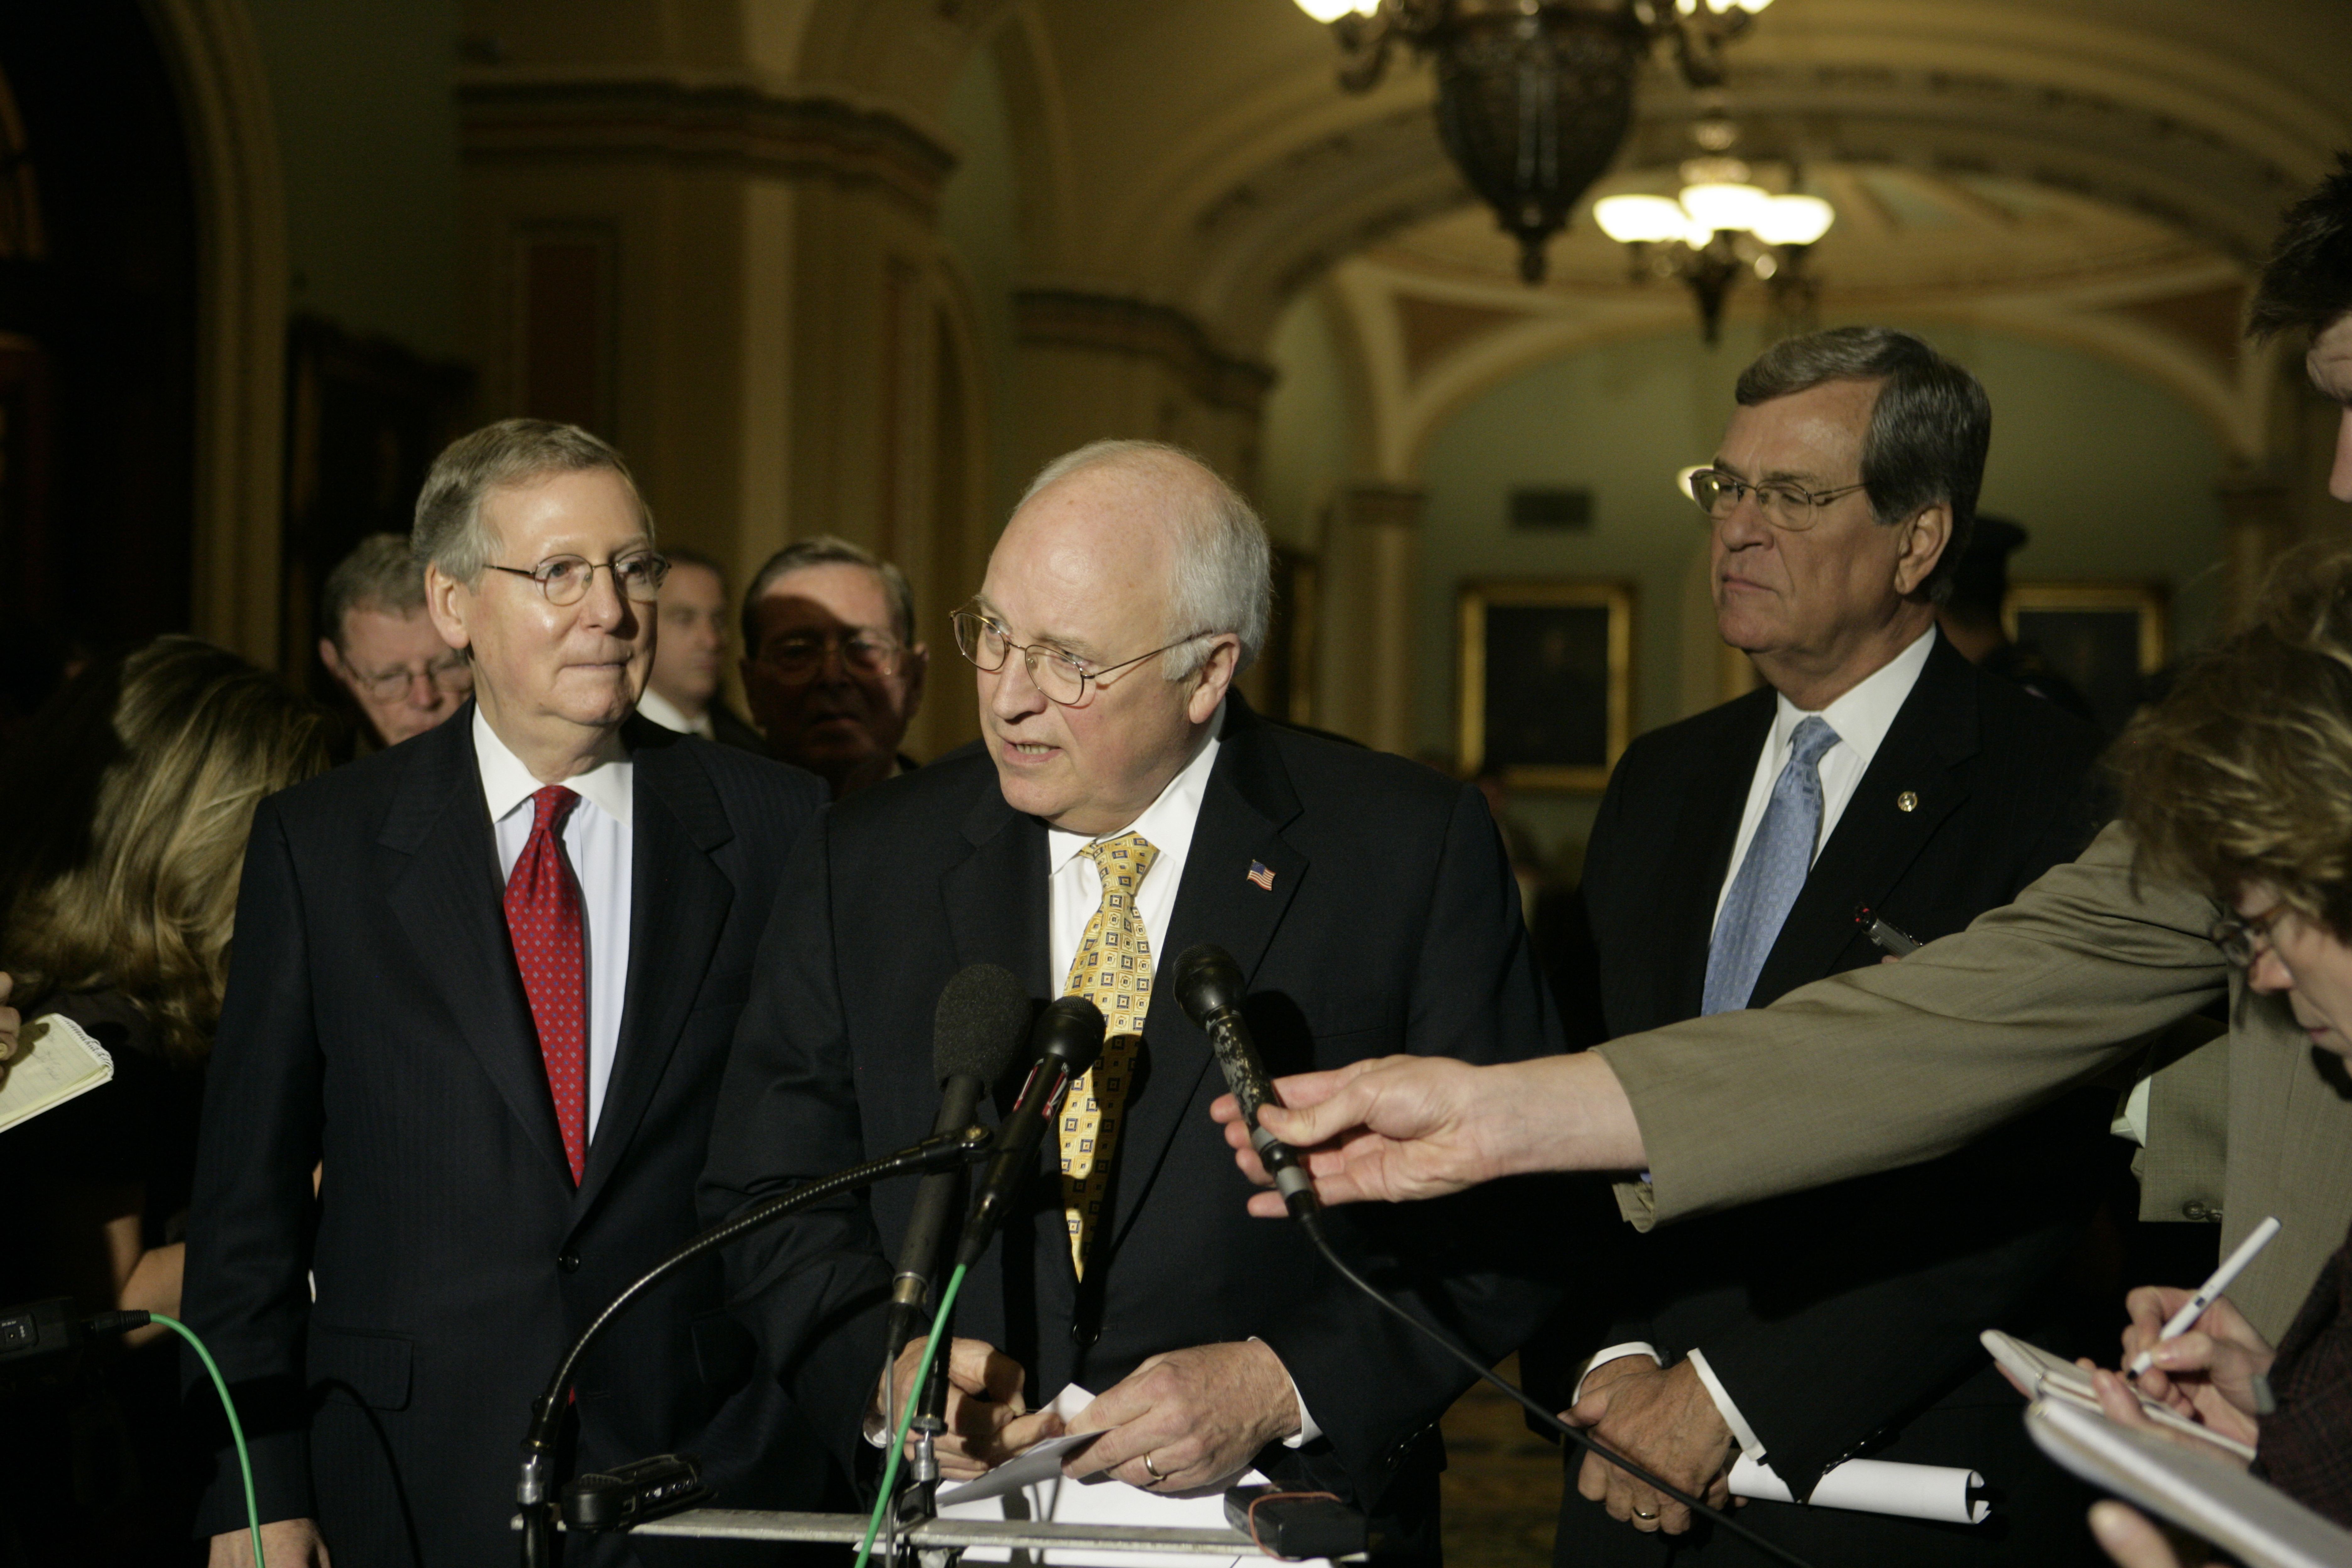 Dick Cheney Mitch McConnell Trent Lott 2007